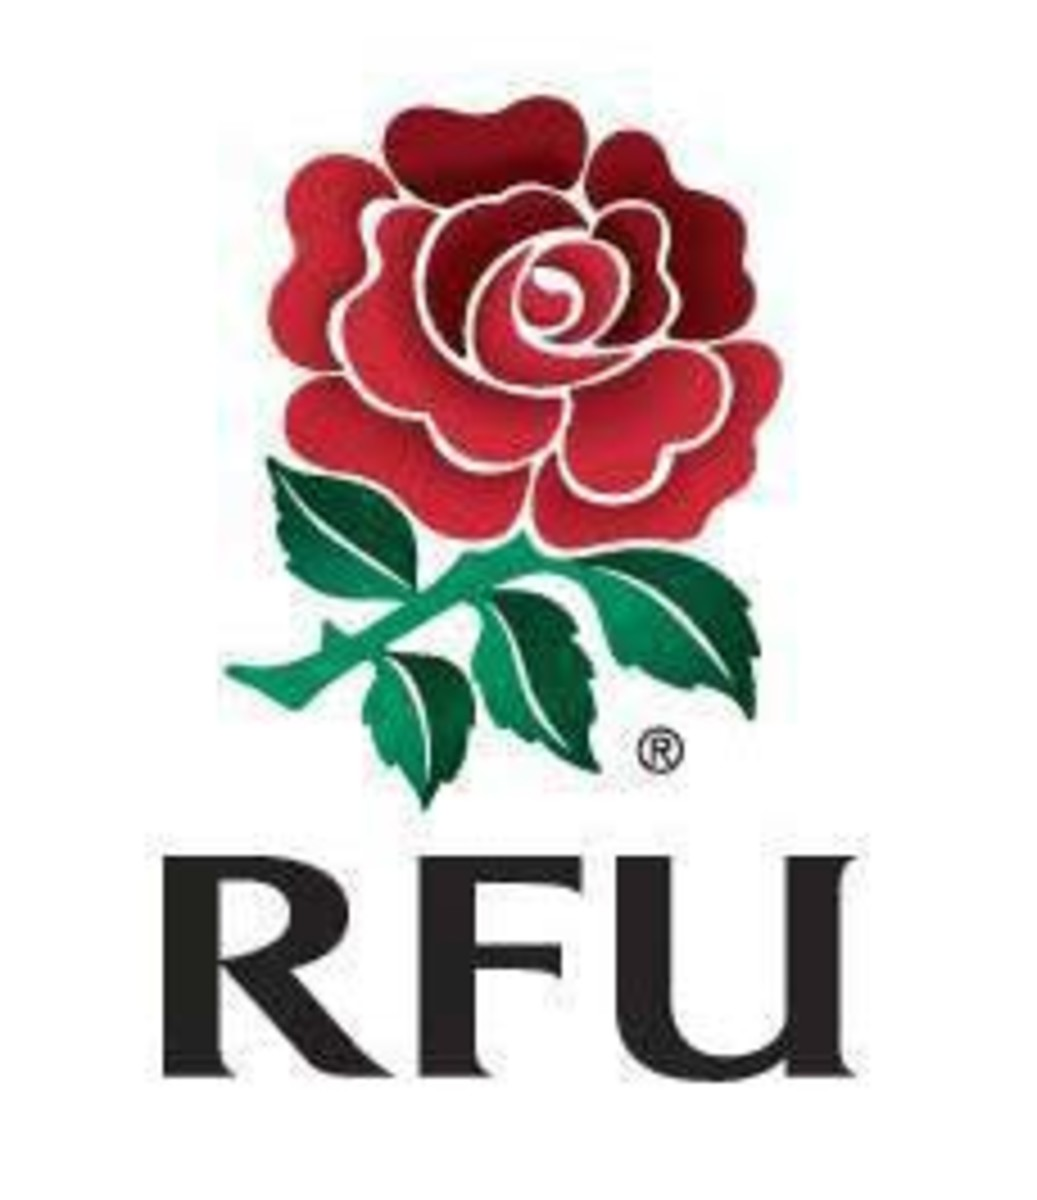 The rose is NOT the royal rose of England (which is red and white), but IS the symbol of the English Rugby Football Union